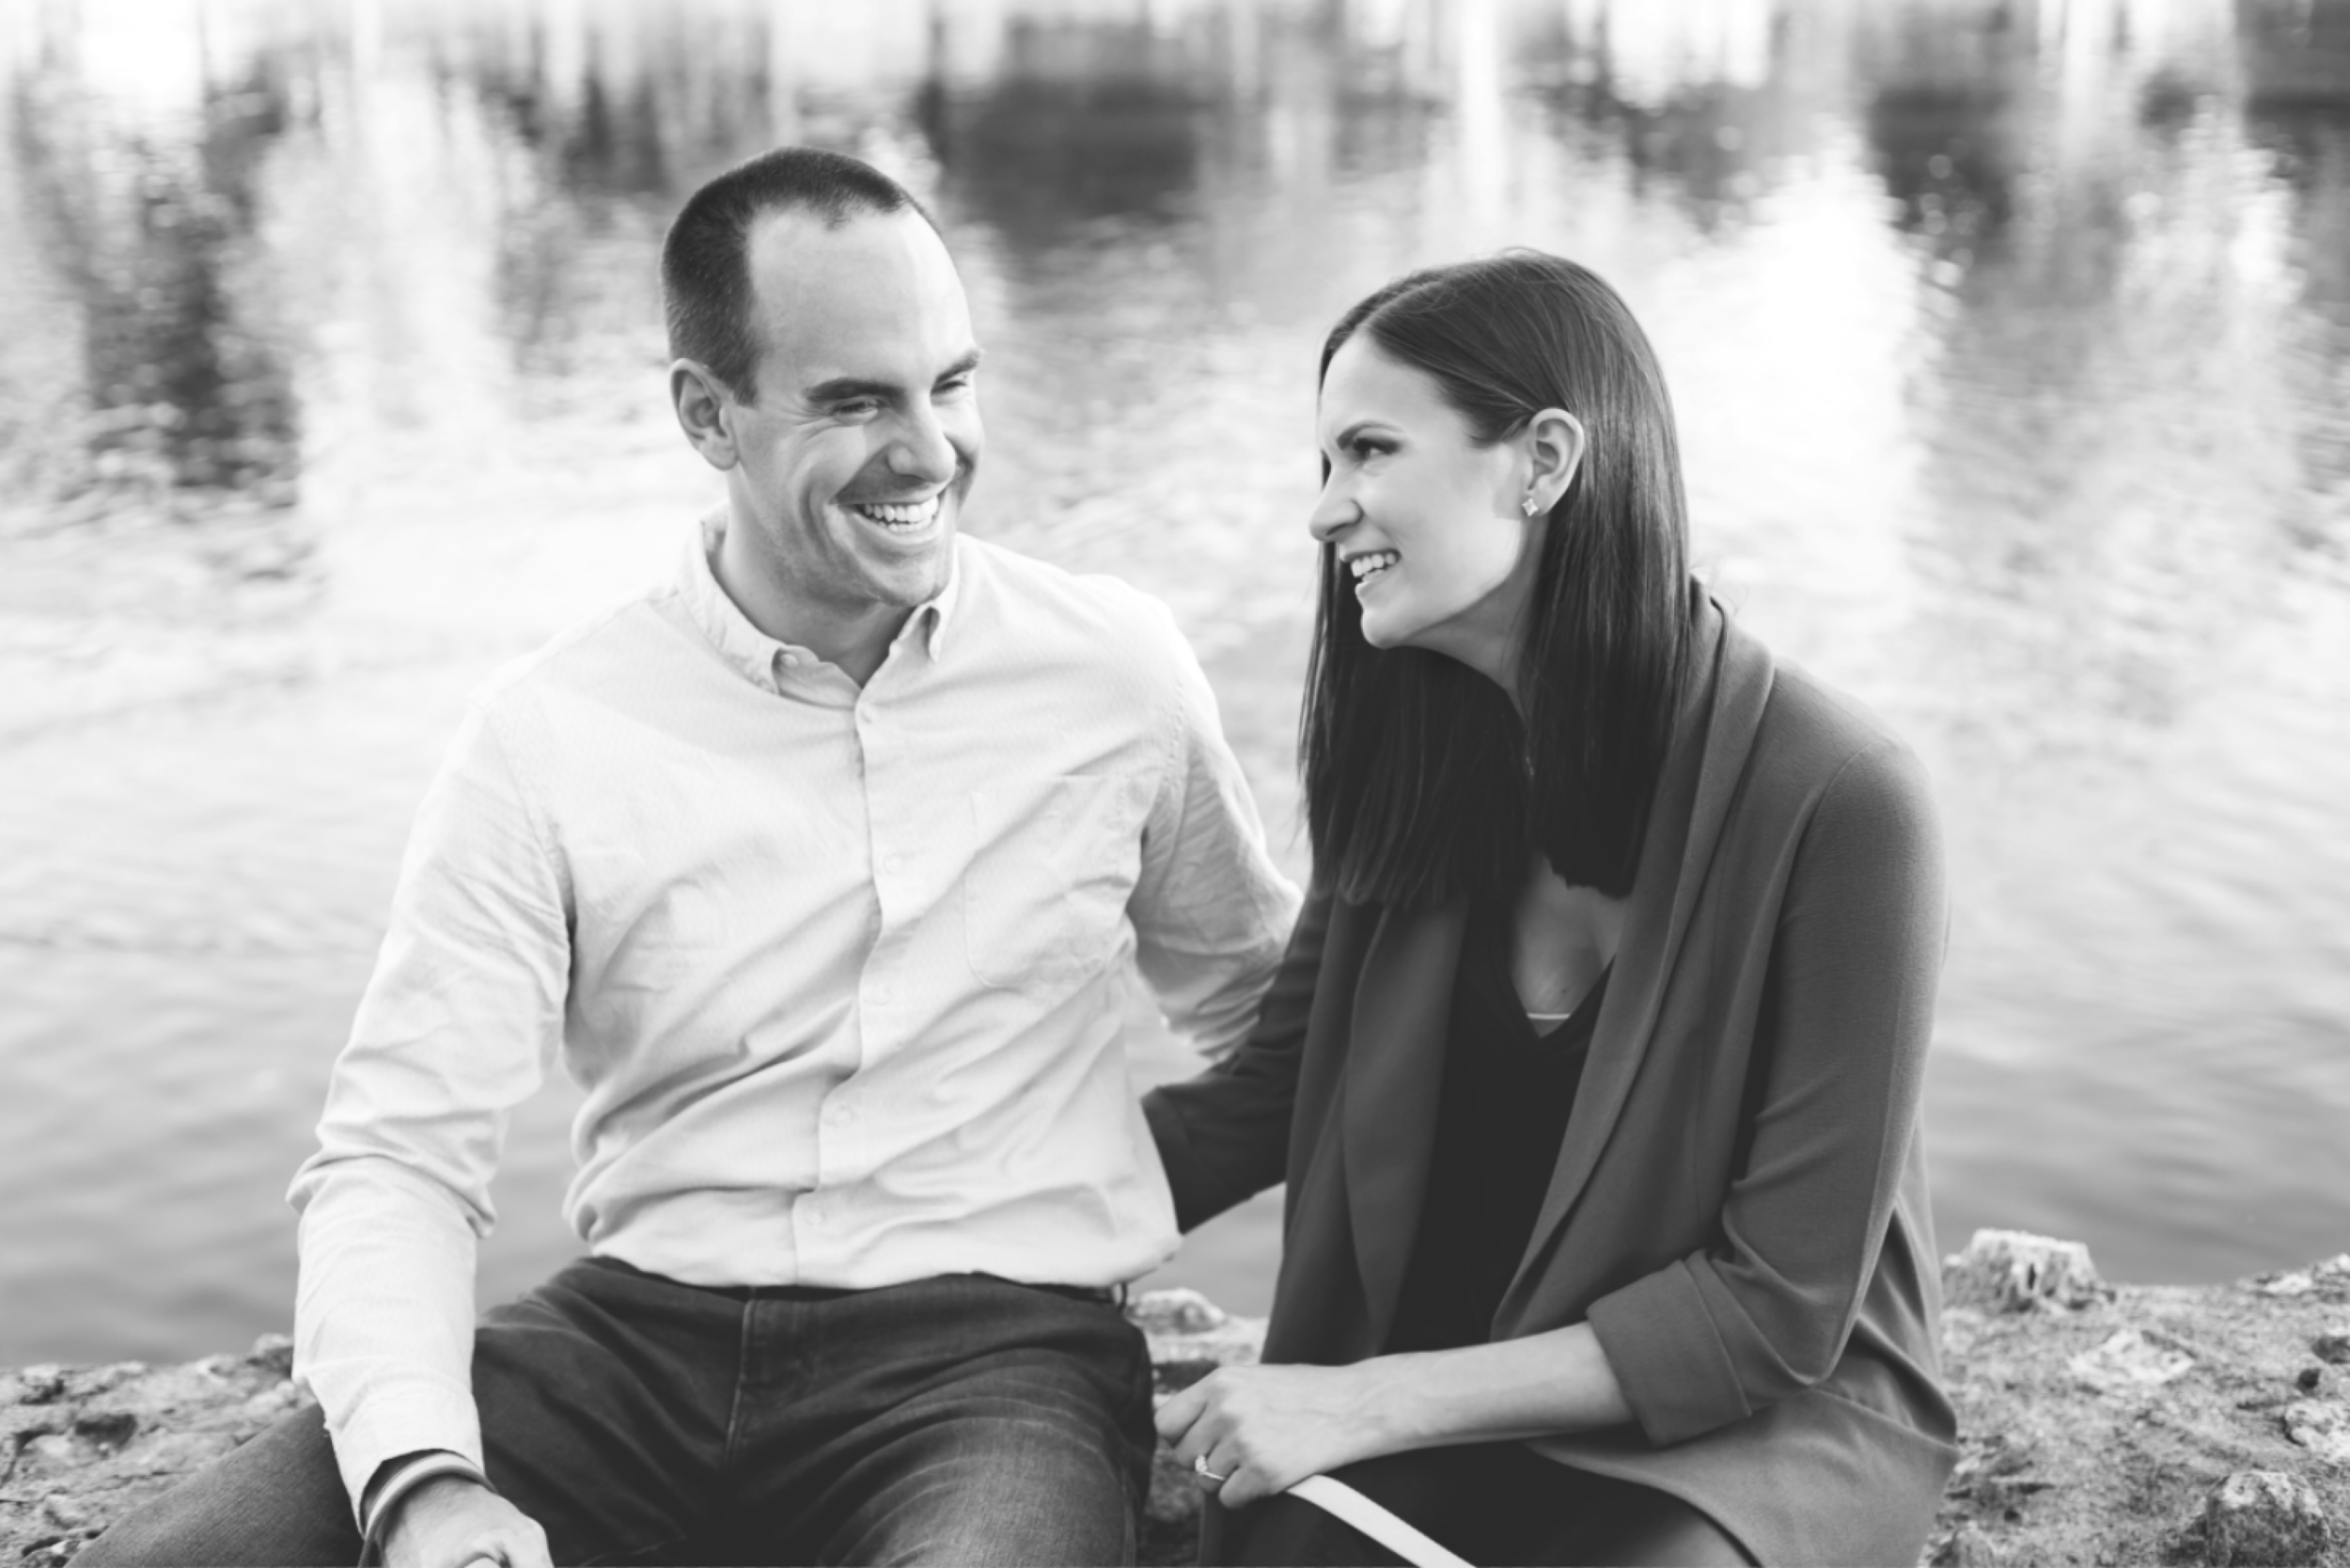 Engagement-Photos-Guelph-Park-Photographer-Wedding-Hamilton-GTA-Niagara-Oakville-Guelph-Tennis-Court-Basketball-Modern-Moments-by-Lauren-Engaged-Photography-Photo-Image-2.png